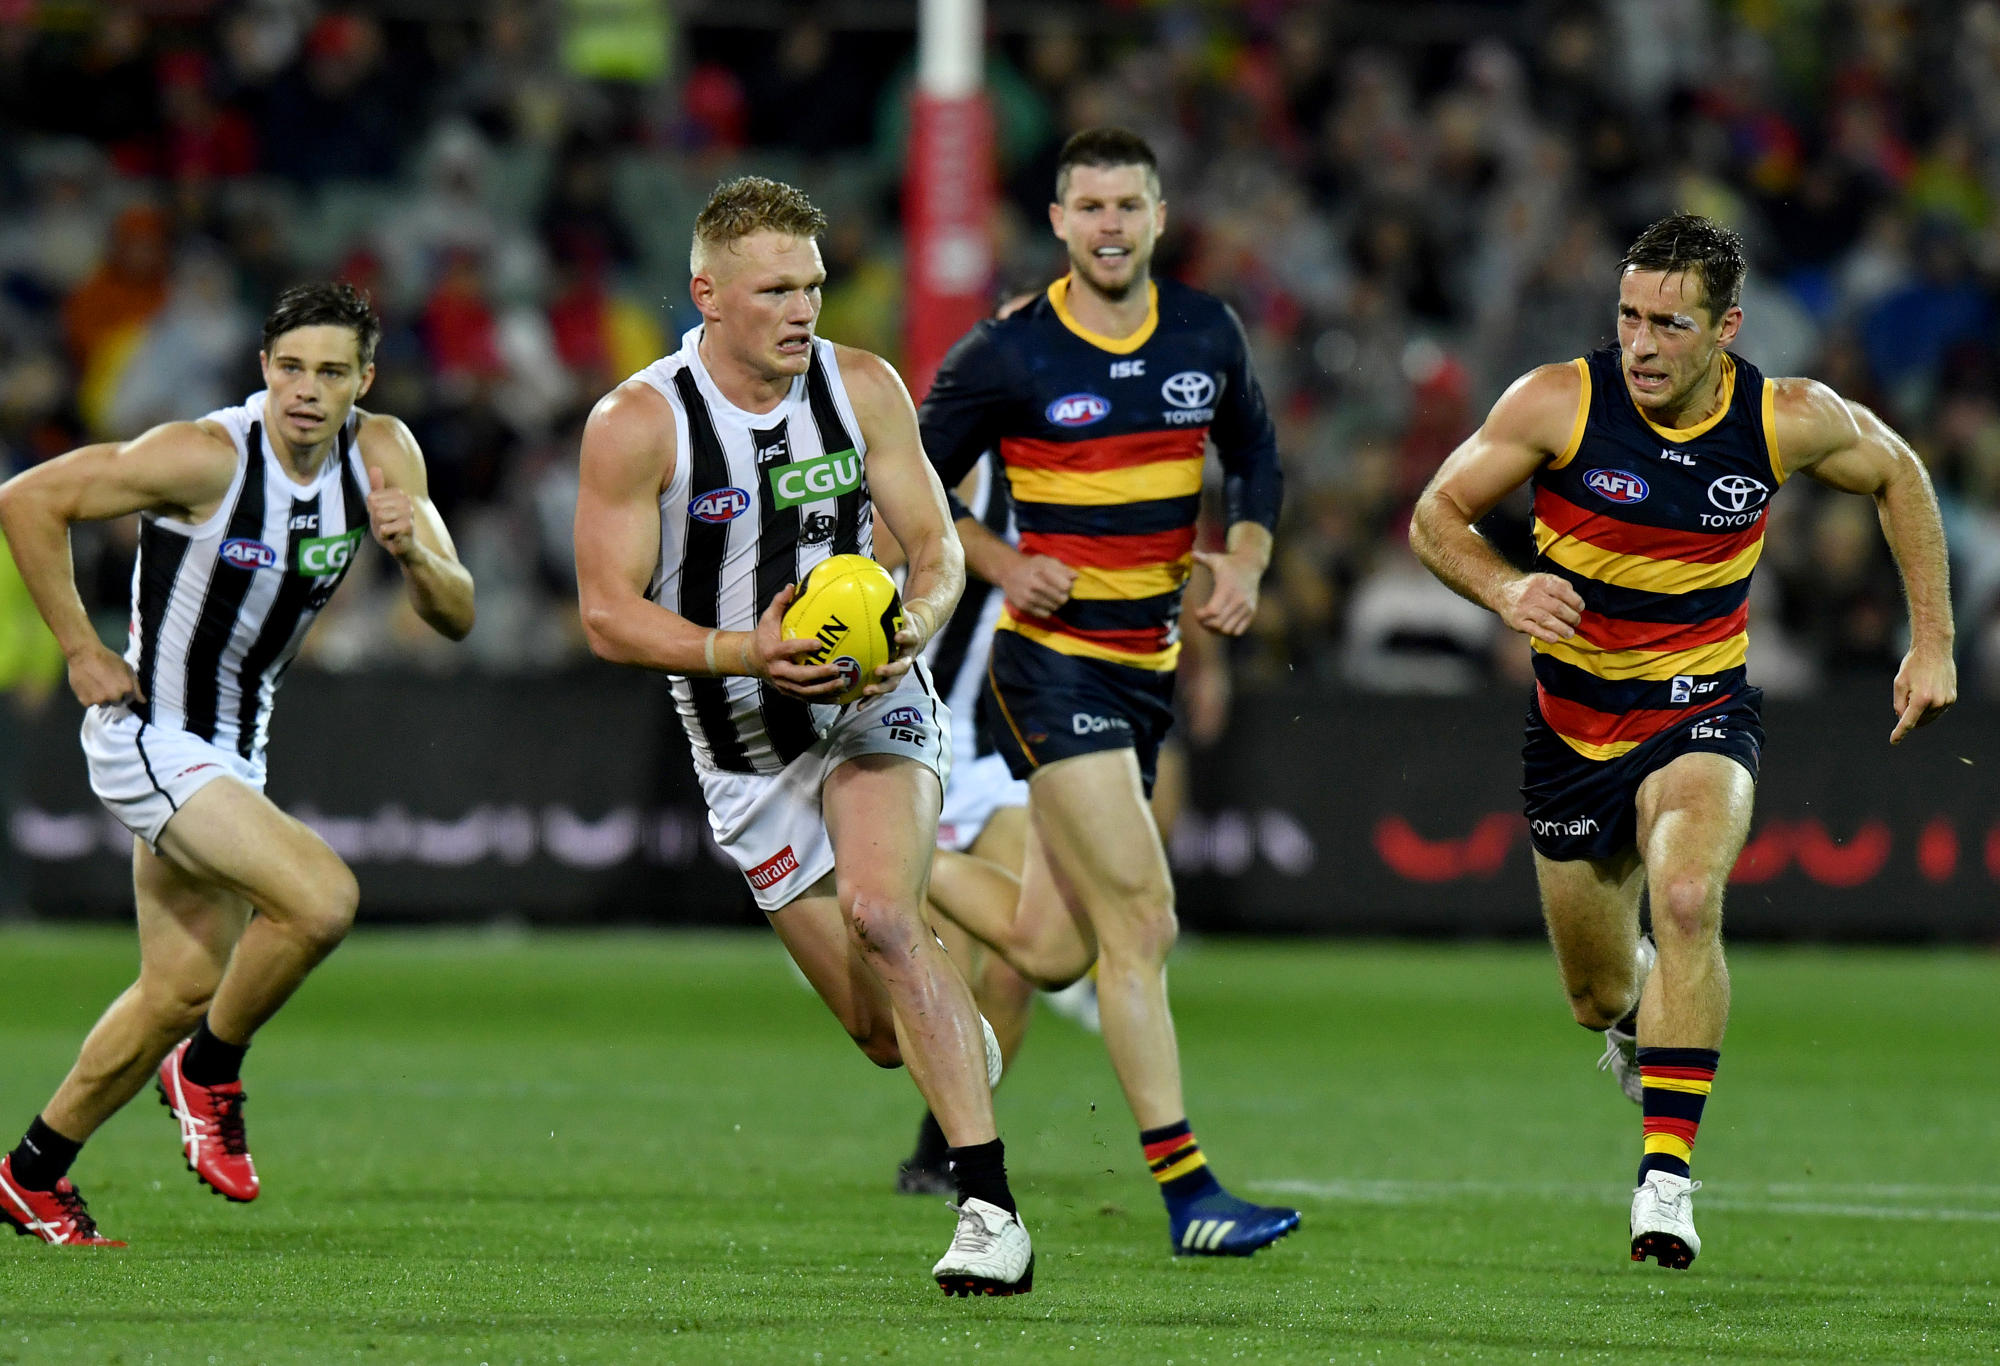 Adam Treloar runs for the Magpies